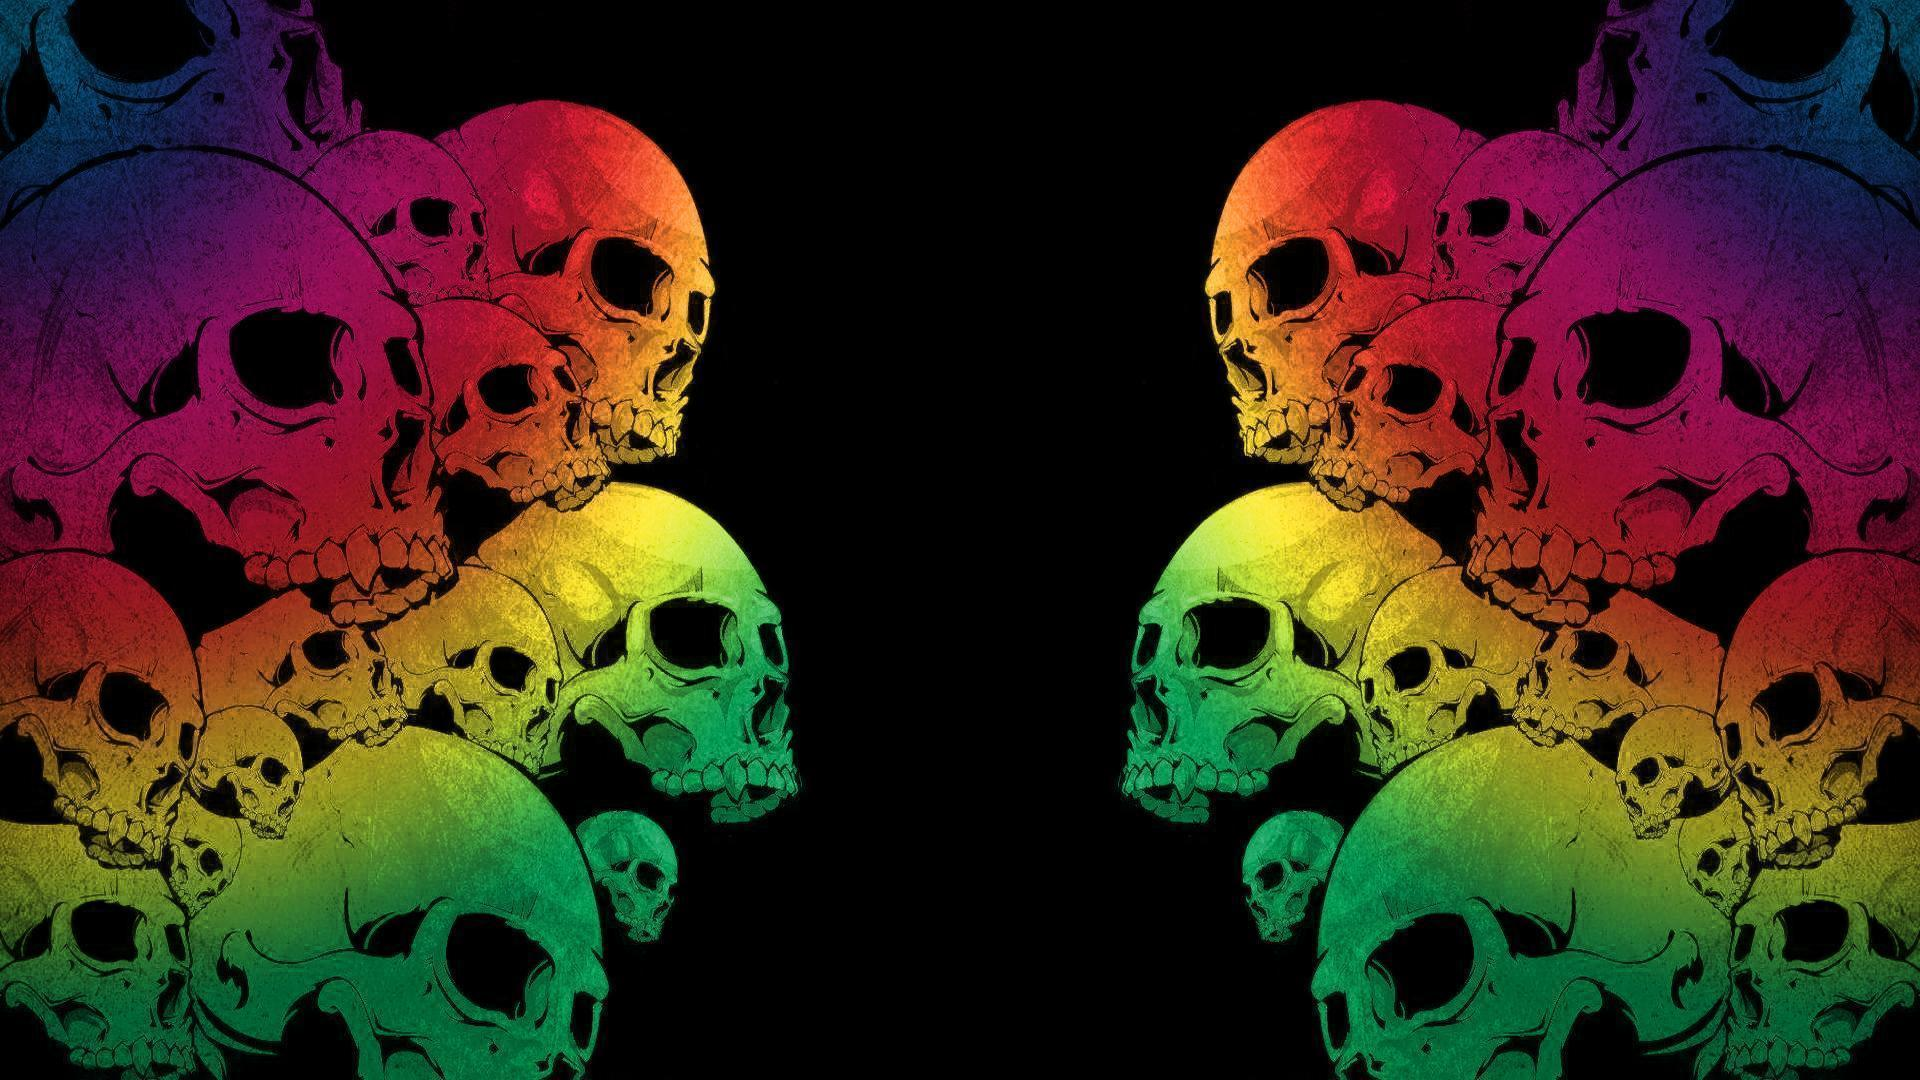 graffiti wallpaper skull hd - photo #42